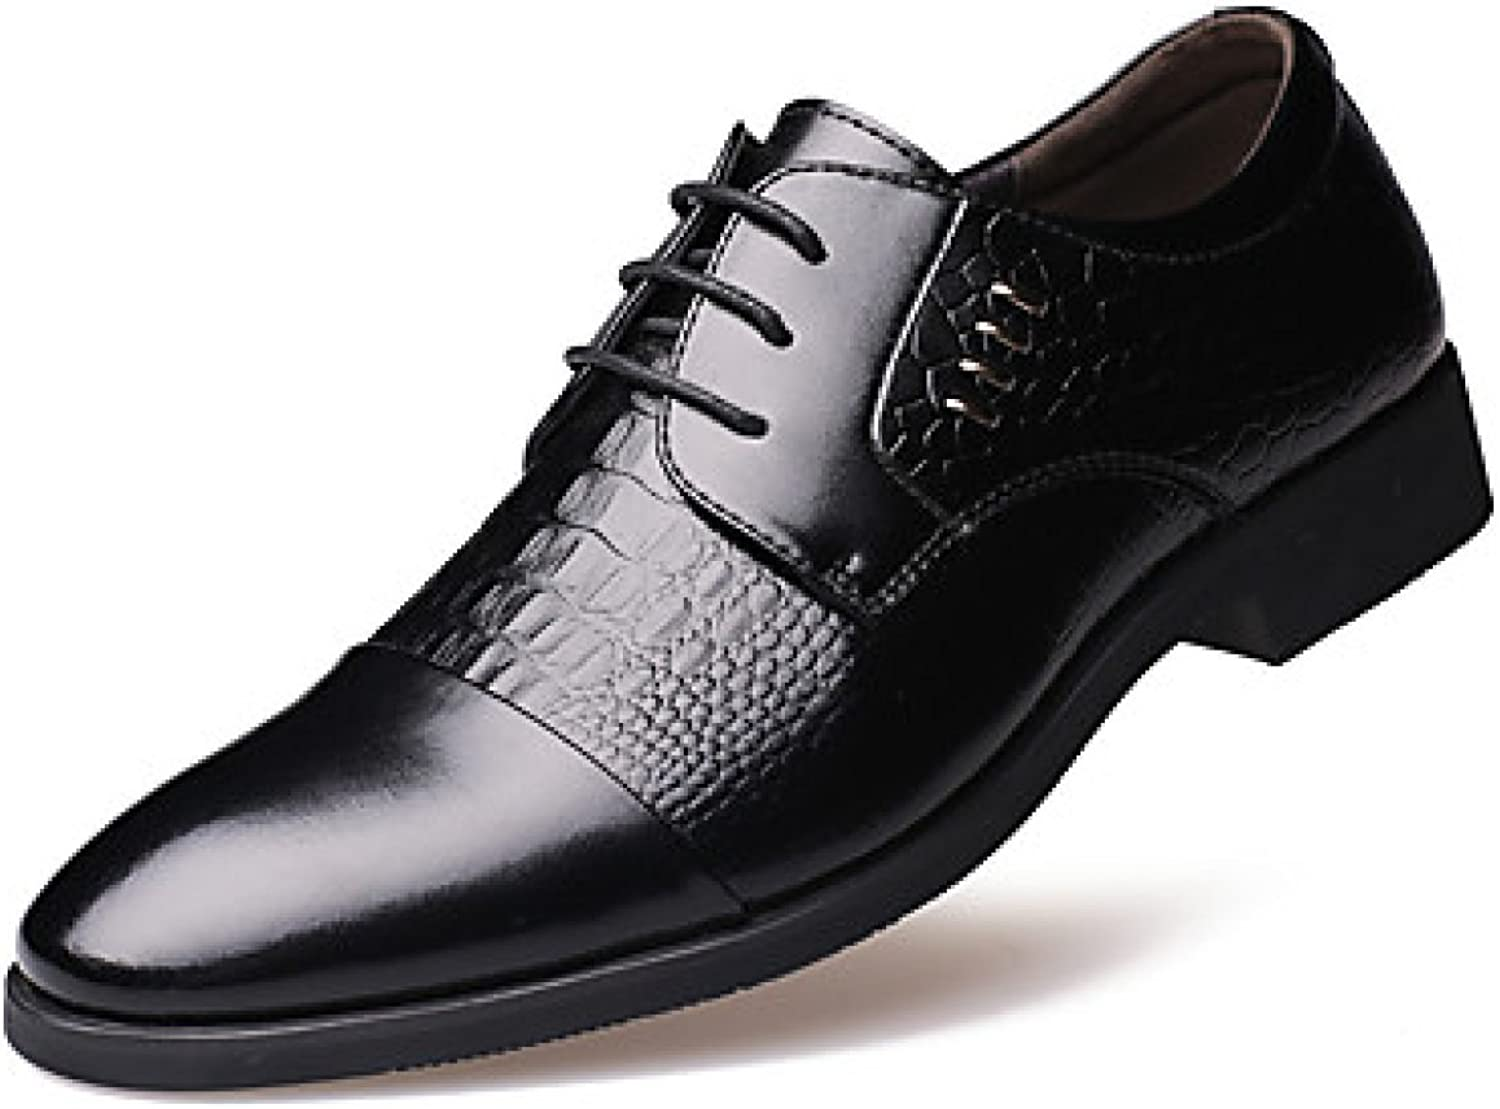 Men's Oxfords Spring Summer Fall Winter Comfort Leather Outdoor Office Career Casual Party Evening Flat Heel Rivet Black Yellow